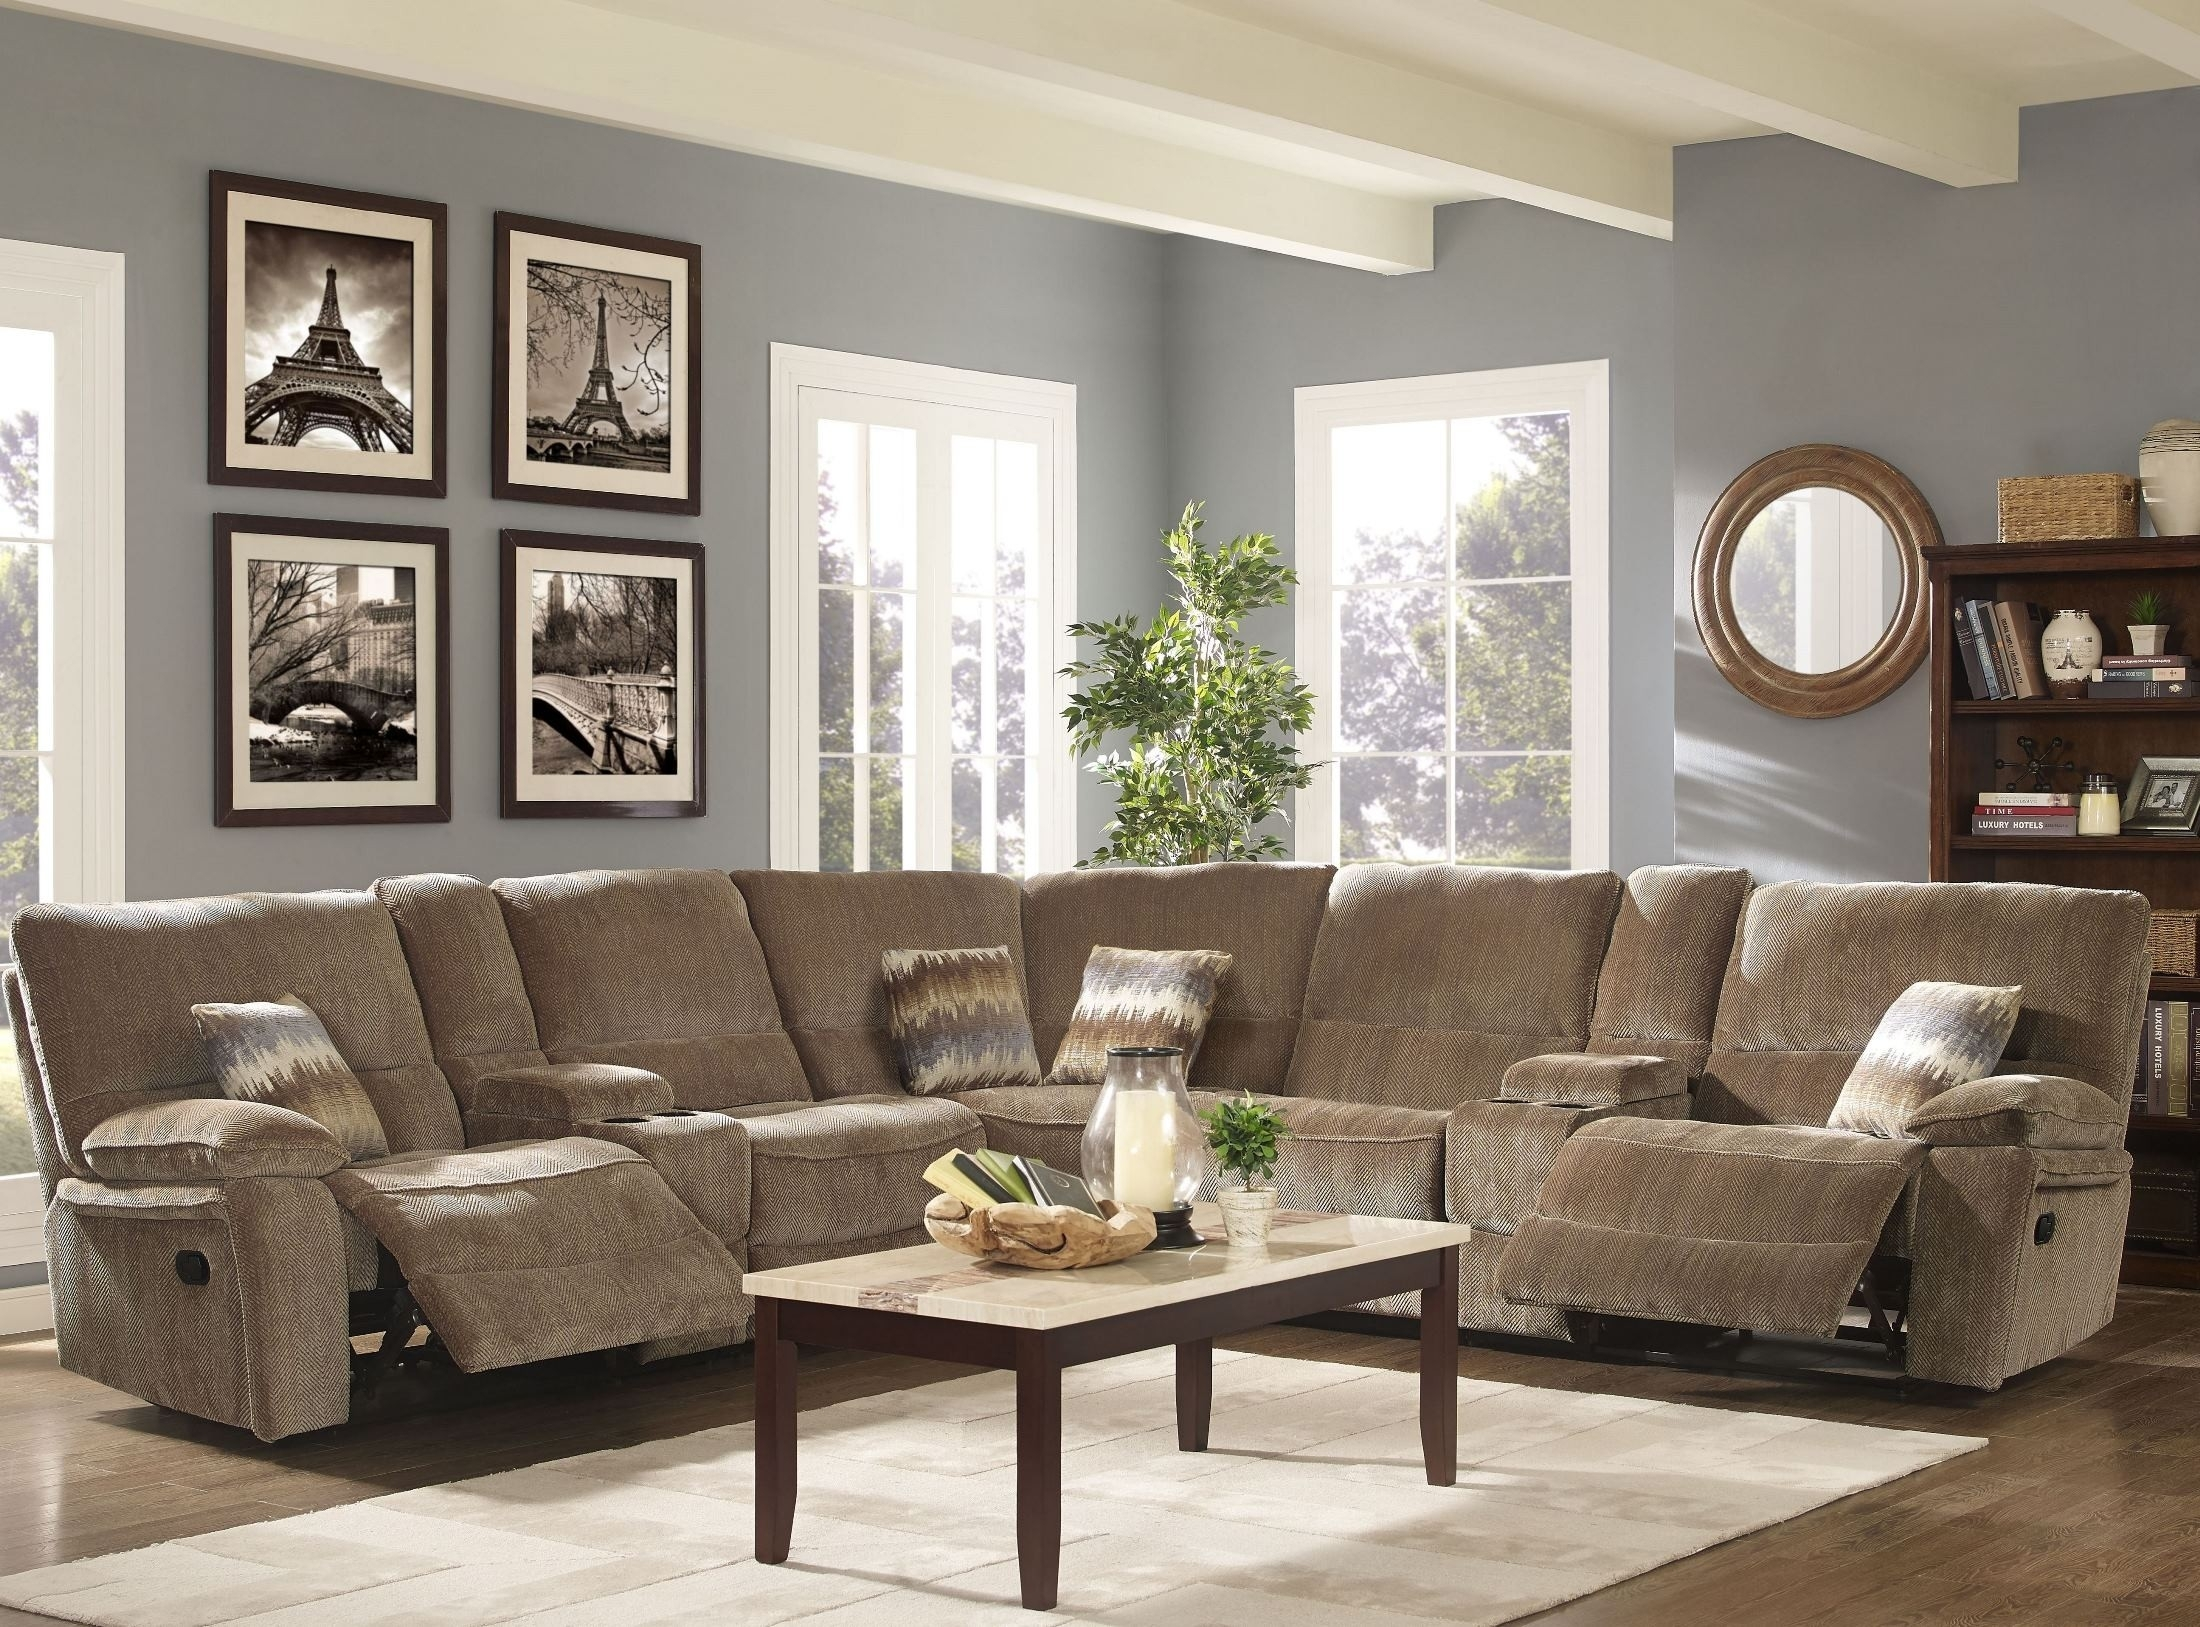 Ranger Bravo Sandalwood Power Reclining Sectional From New Classic Inside Turdur 3 Piece Sectionals With Laf Loveseat (Image 21 of 25)